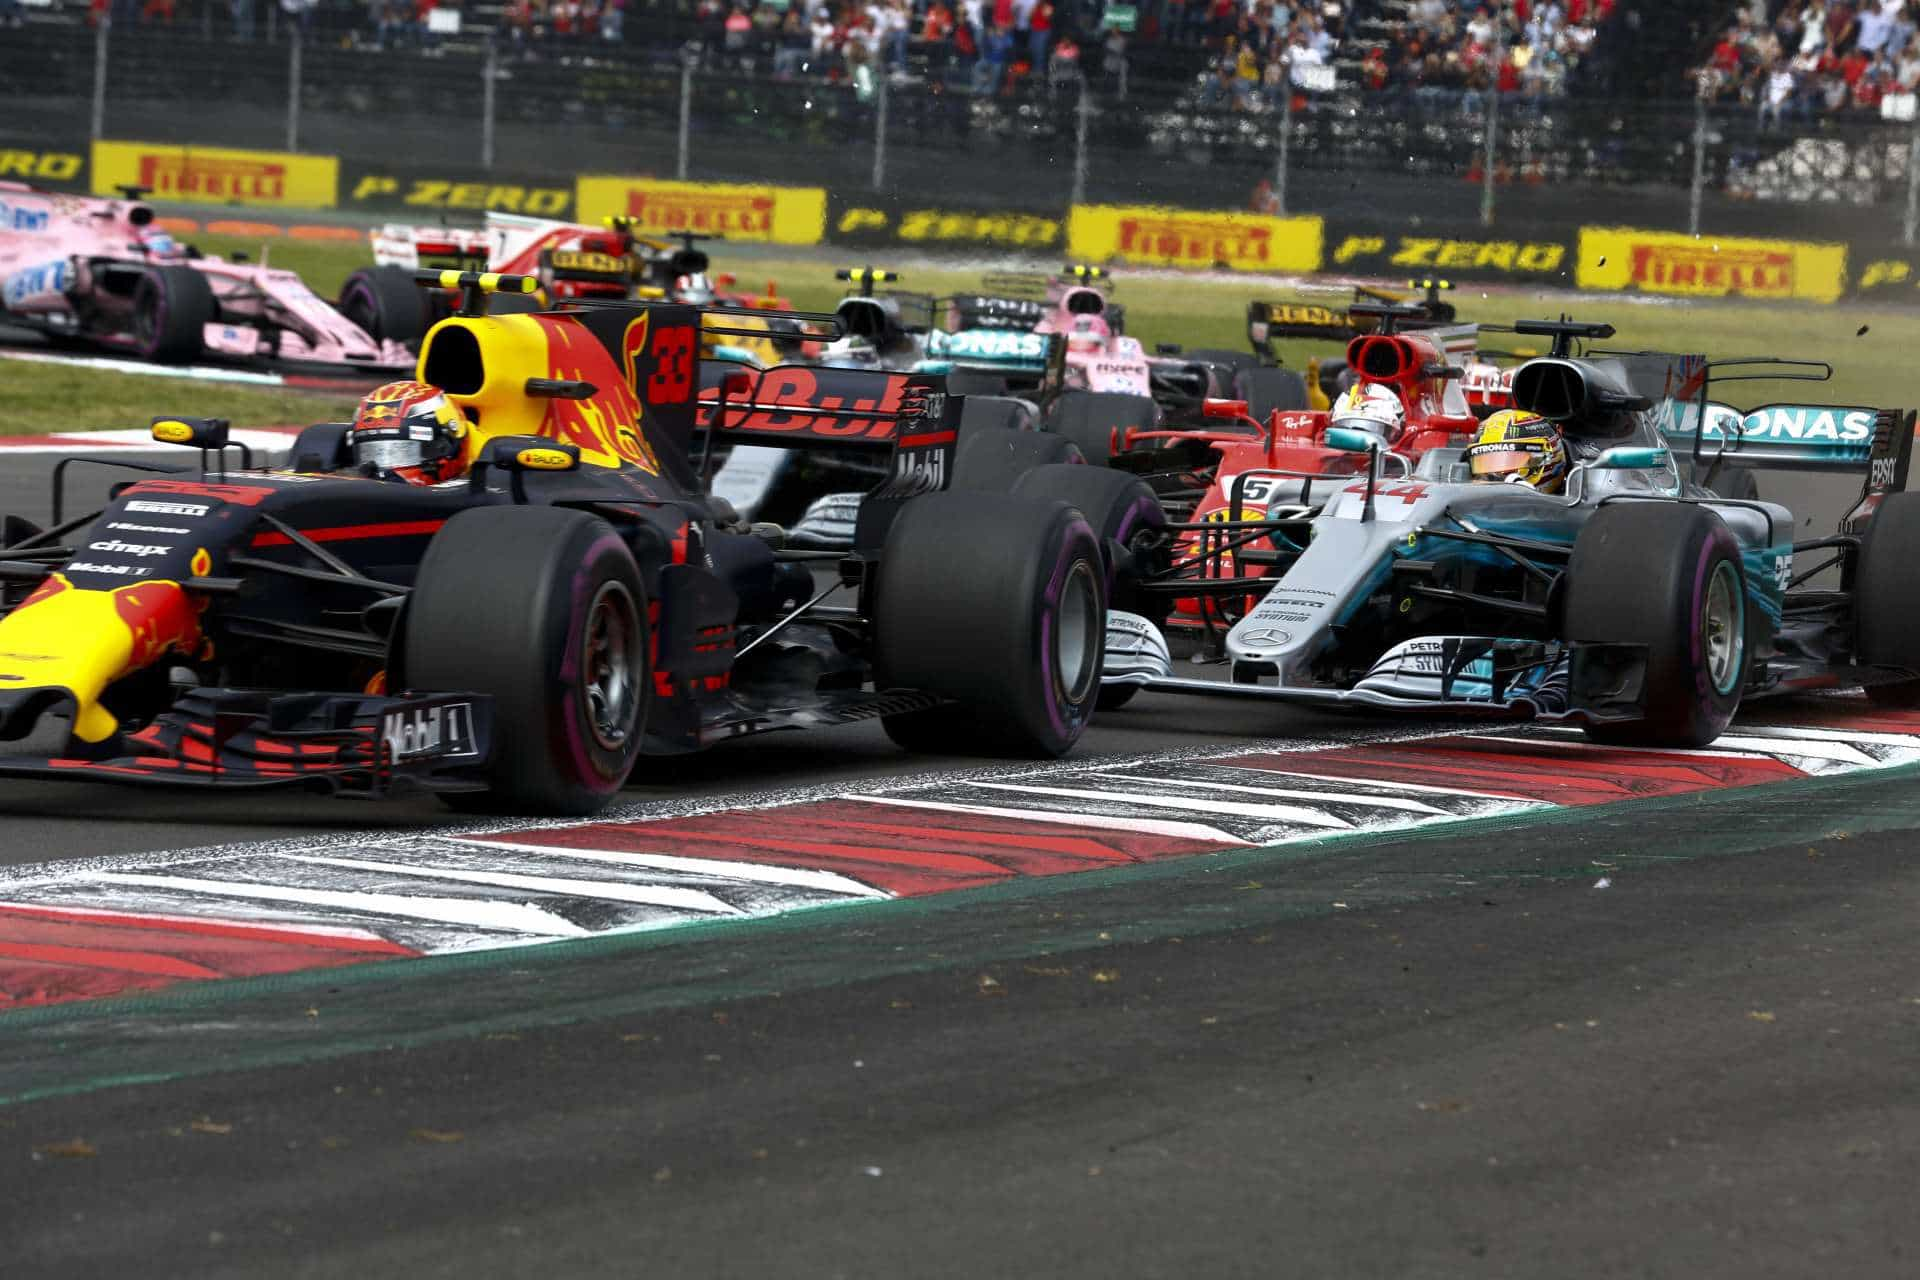 Verstappen leads Hamilton and Vettel Mexican GP F1 2017 start Photo Daimler